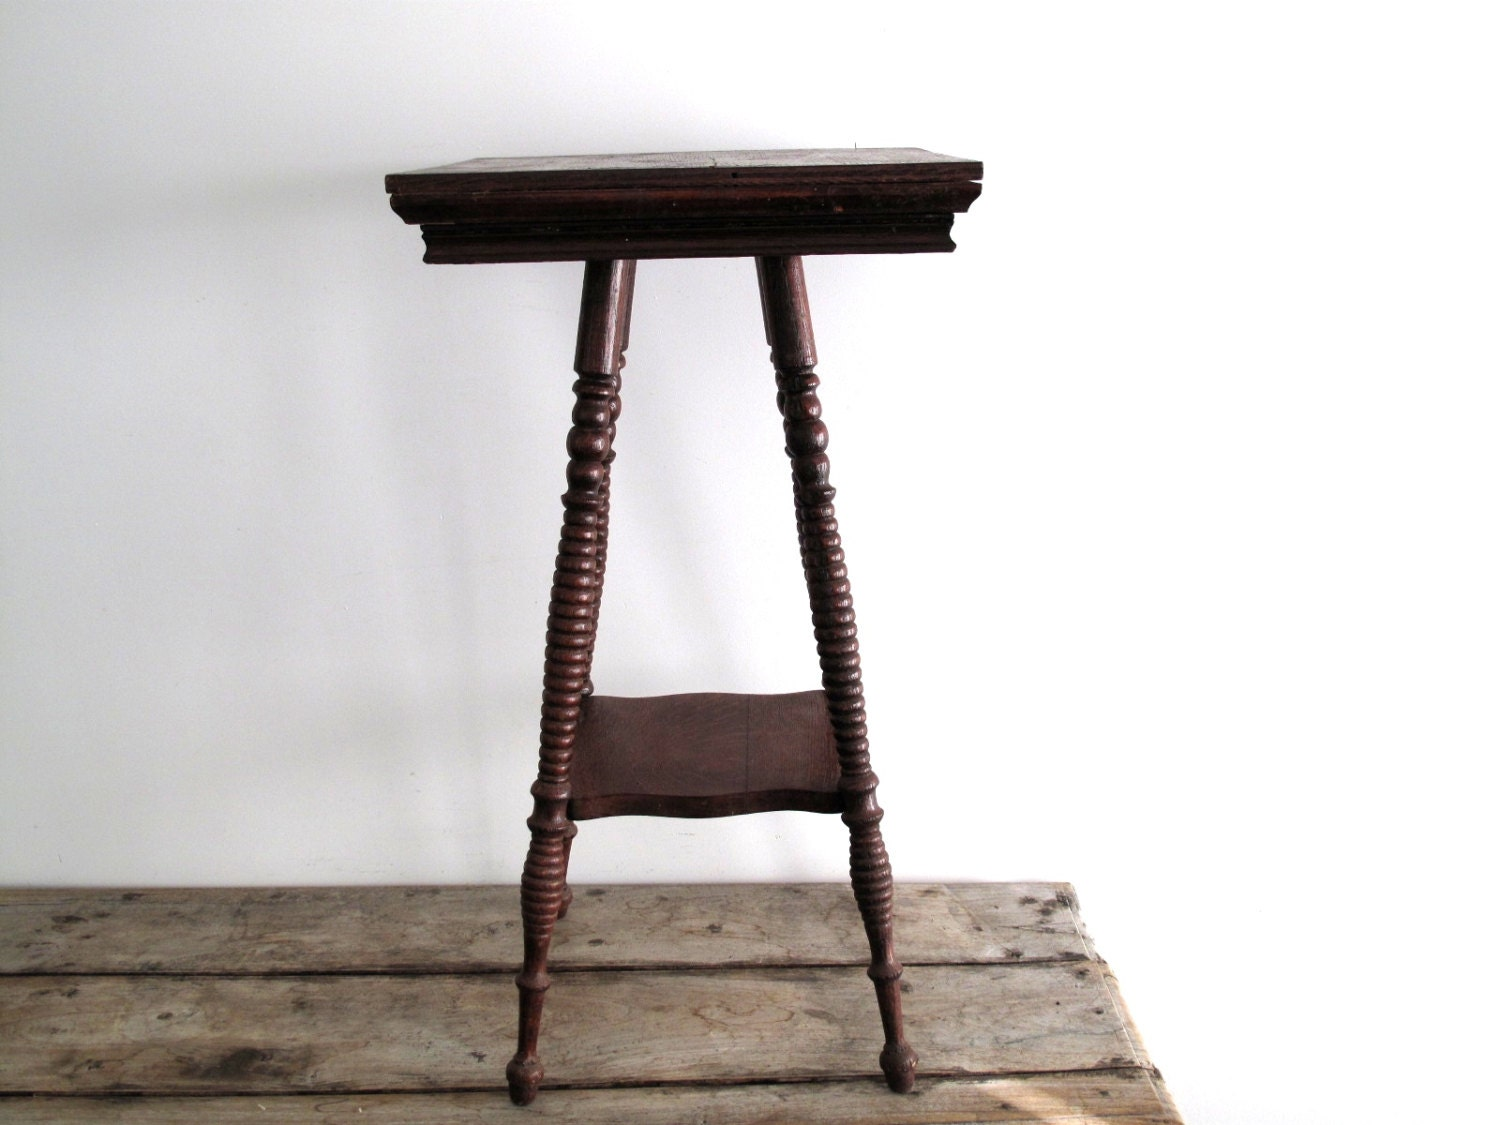 Vintage wood side table with spindle legs by snapshotvintage